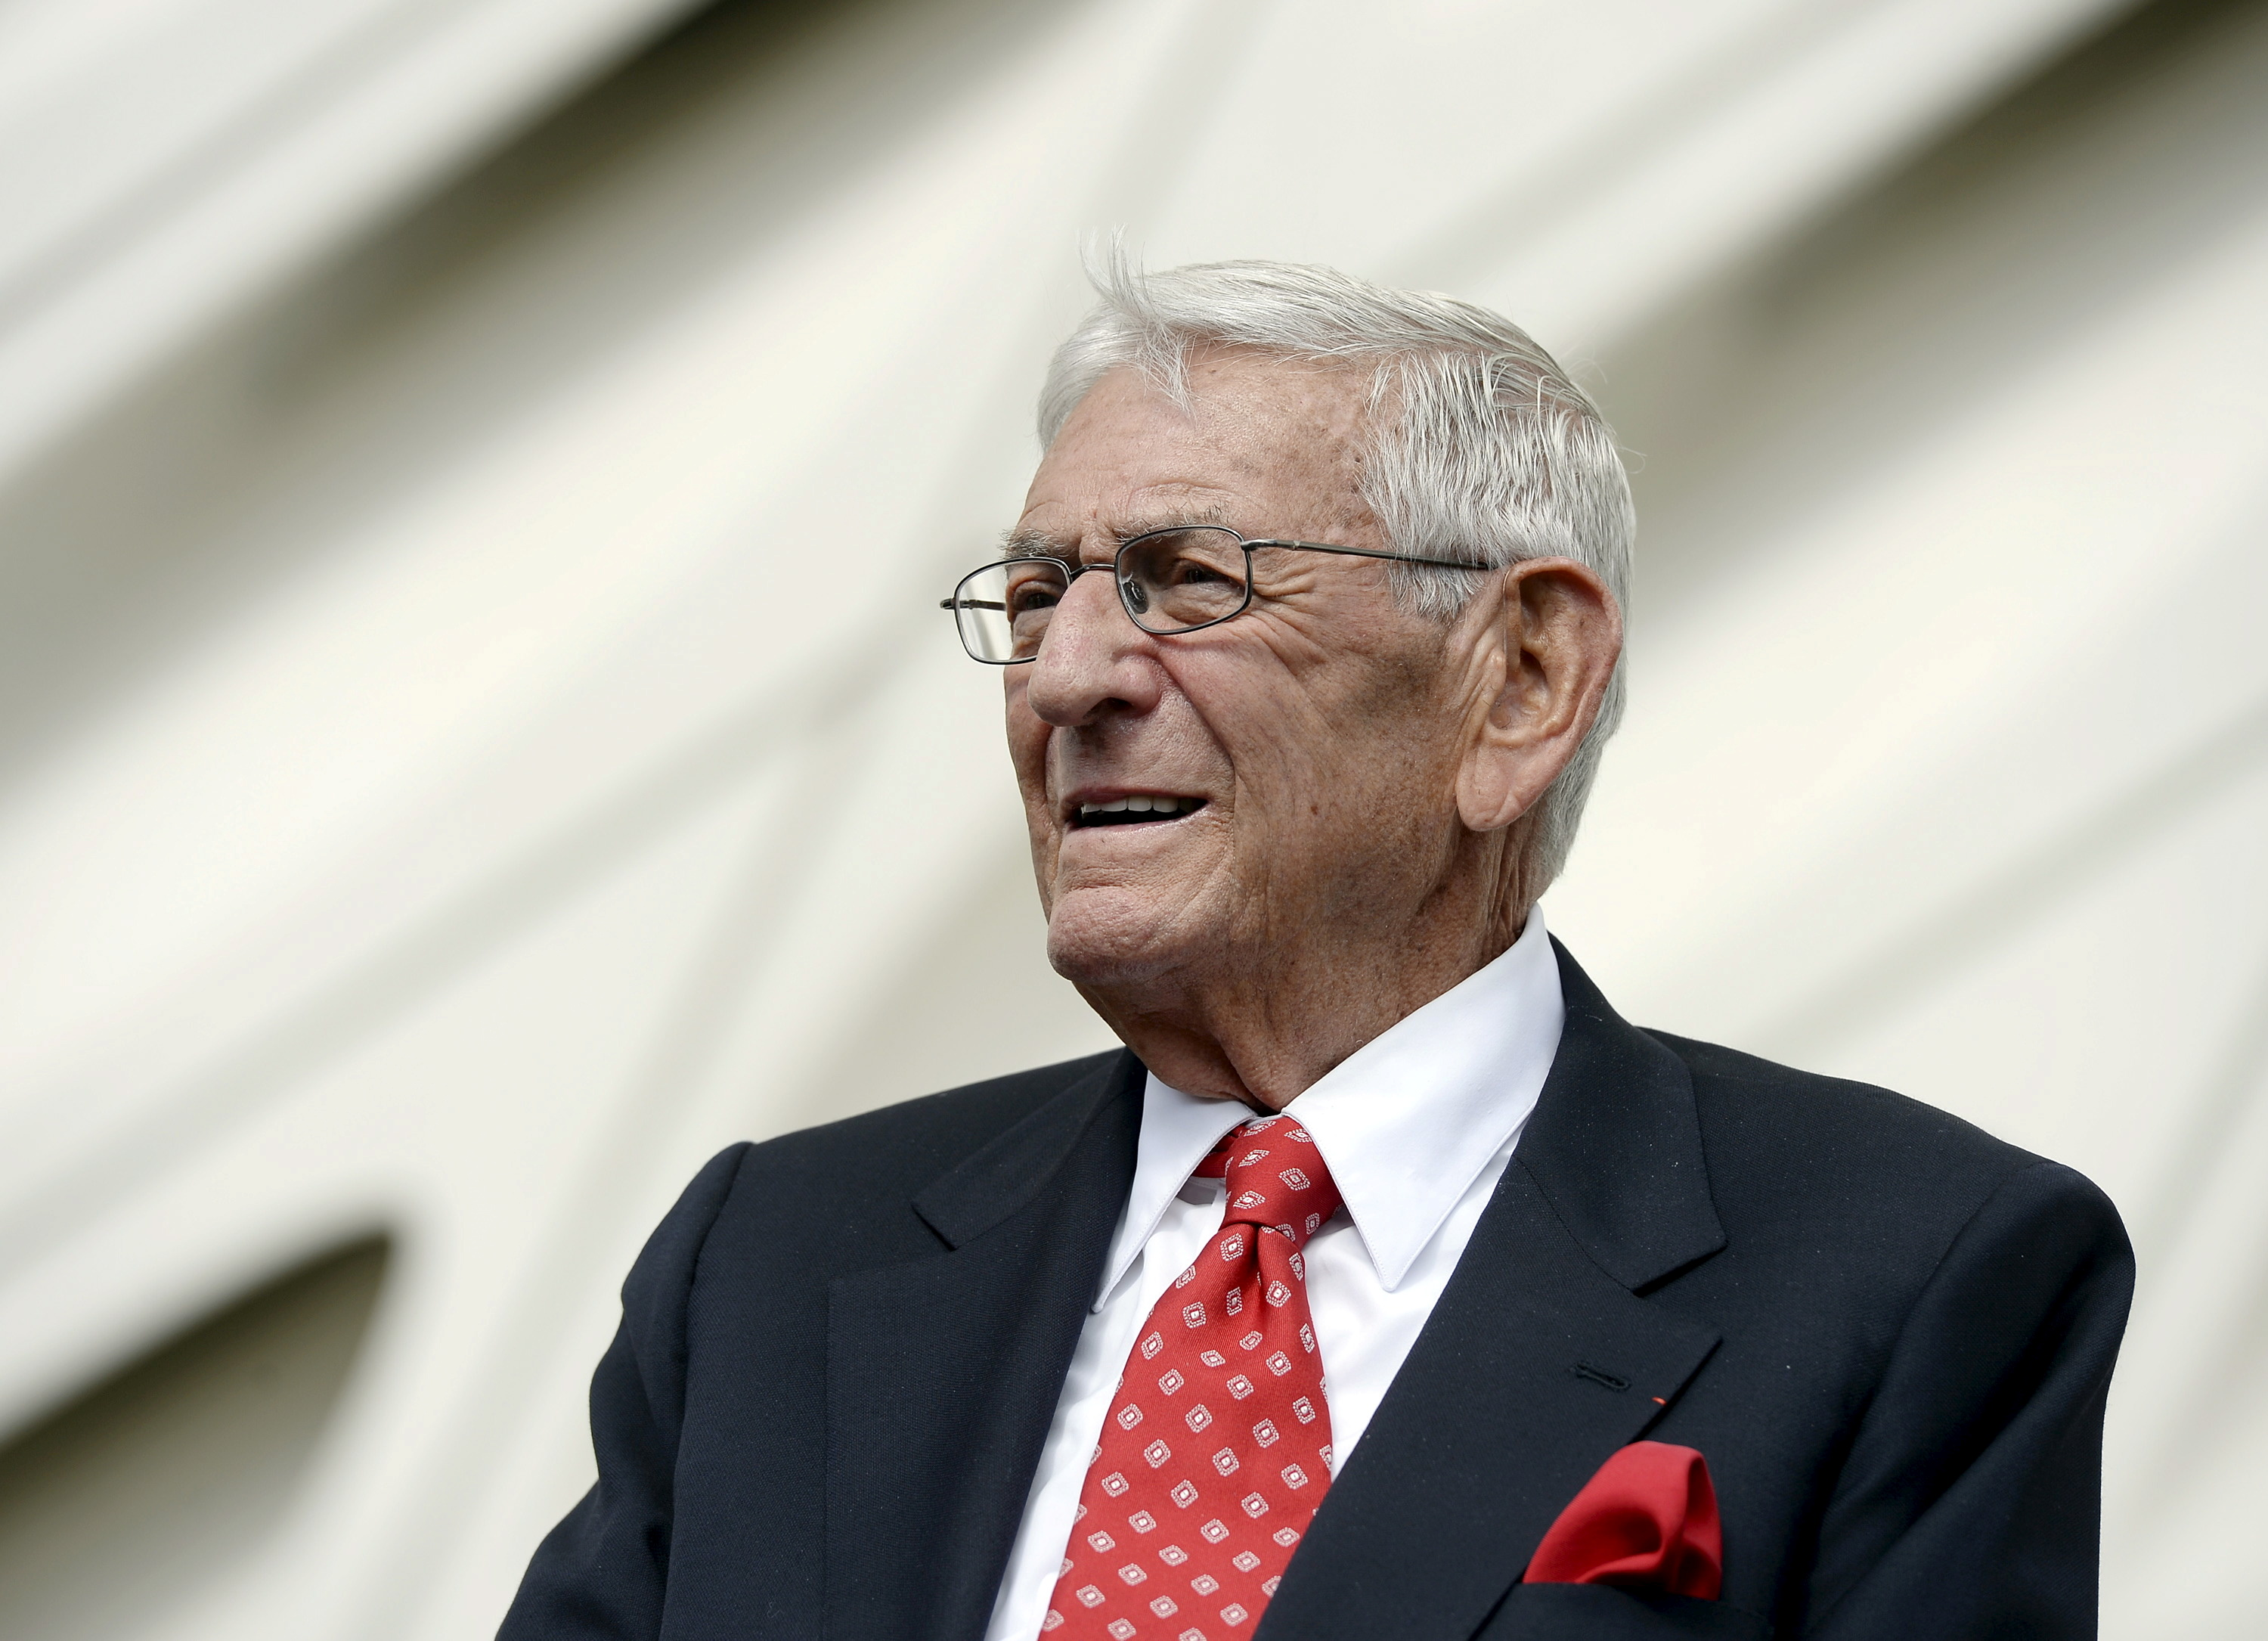 Eli Broad is waiting to speak during a media preview of The Broad Museum in Los Angeles, California on September 16, 2015. REUTERS / Kevork Djansezian / File Photo